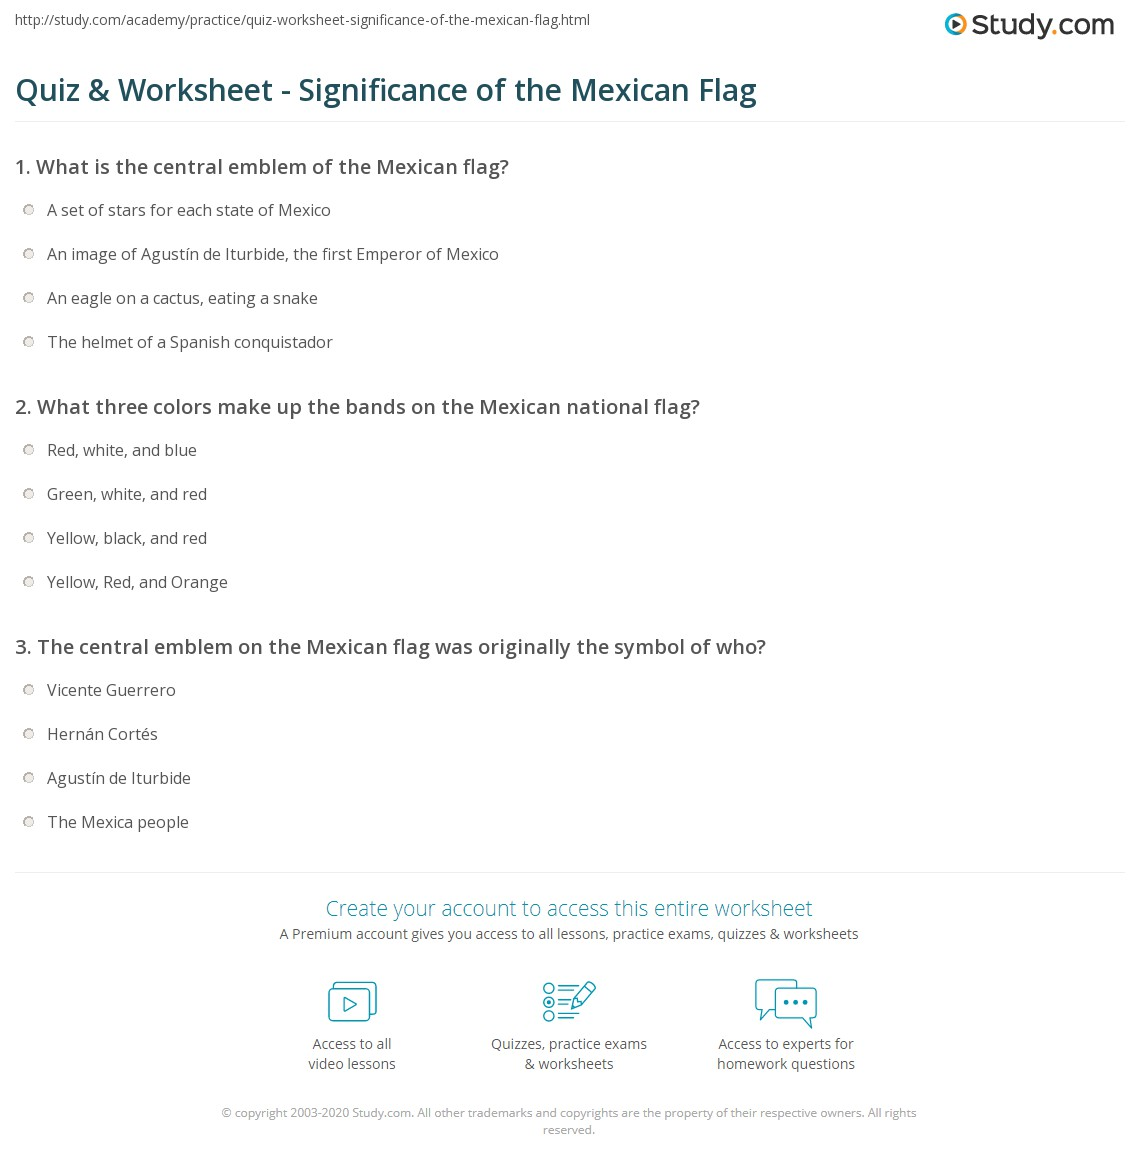 Quiz Worksheet Significance Of The Mexican Flag Study